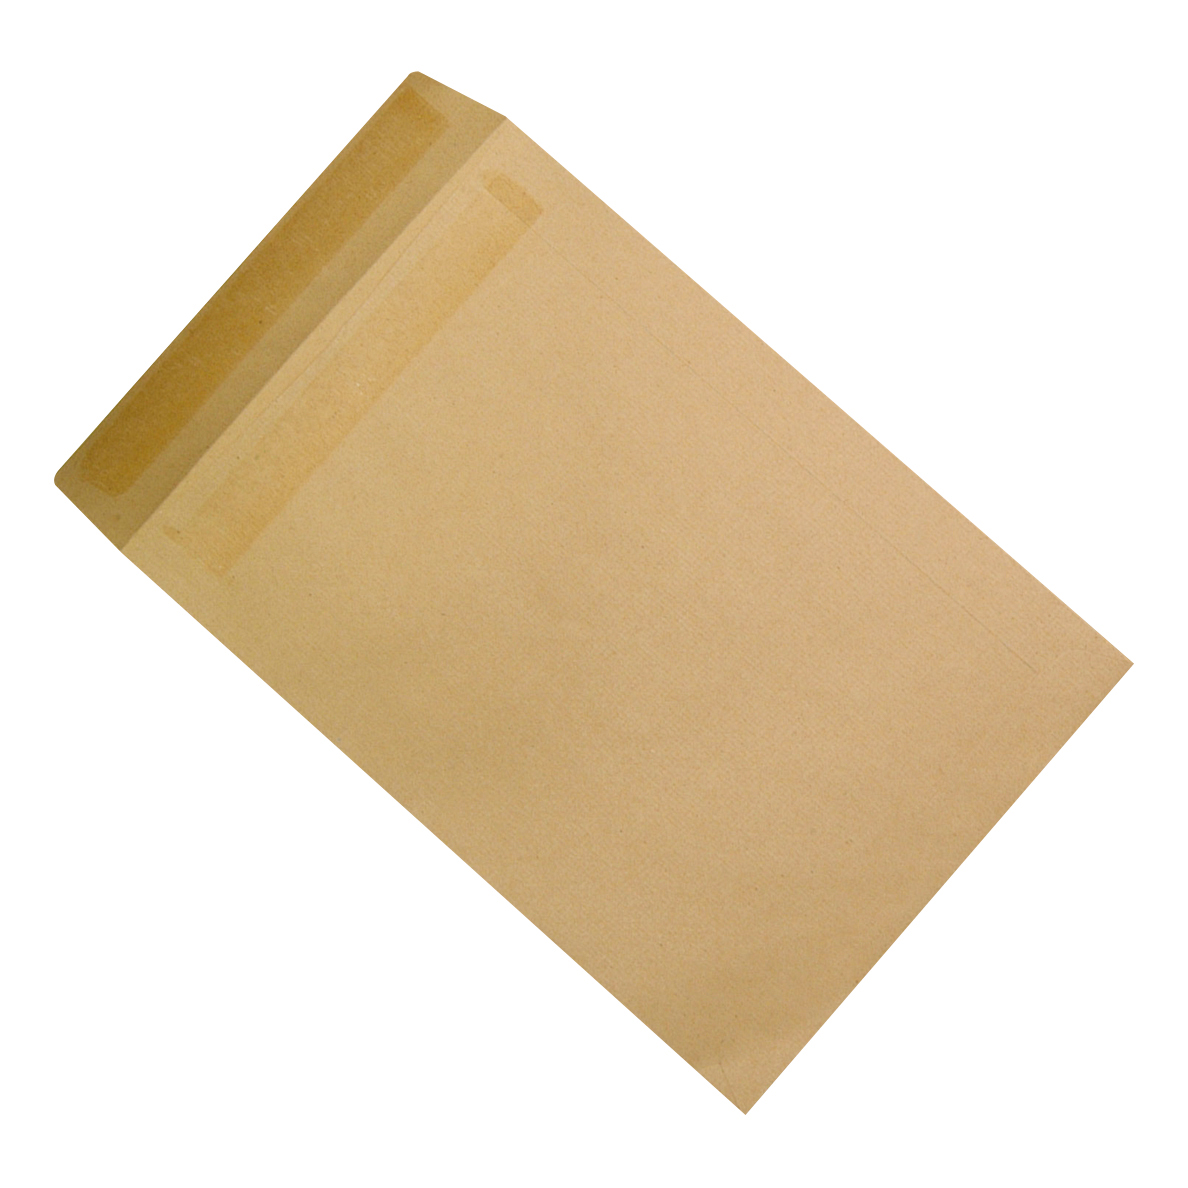 Wage Envelopes 5 Star Office Envelopes Recycled 457x324mm Pocket Self Seal 115gsm Manilla Pack 125